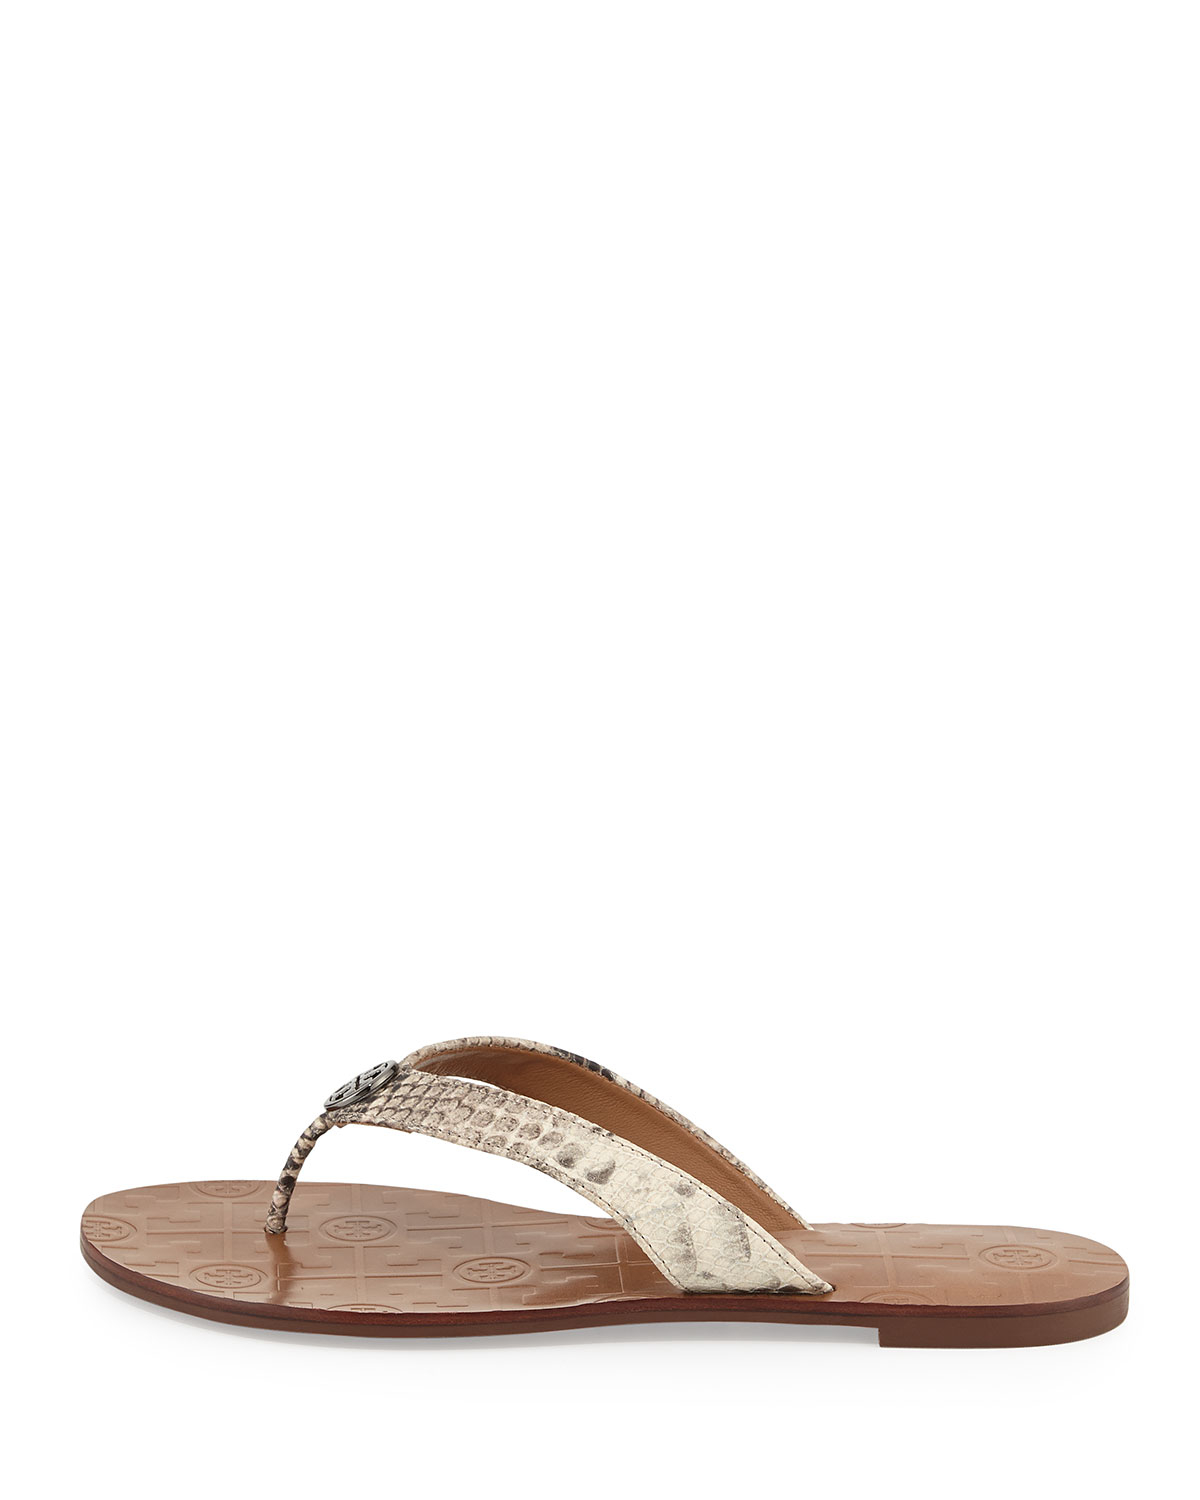 4d05d69480a4c ... Lyst - Tory Burch Thora Snake-print Logo Thong Sandal in Natural super  cute 9edd8 ...